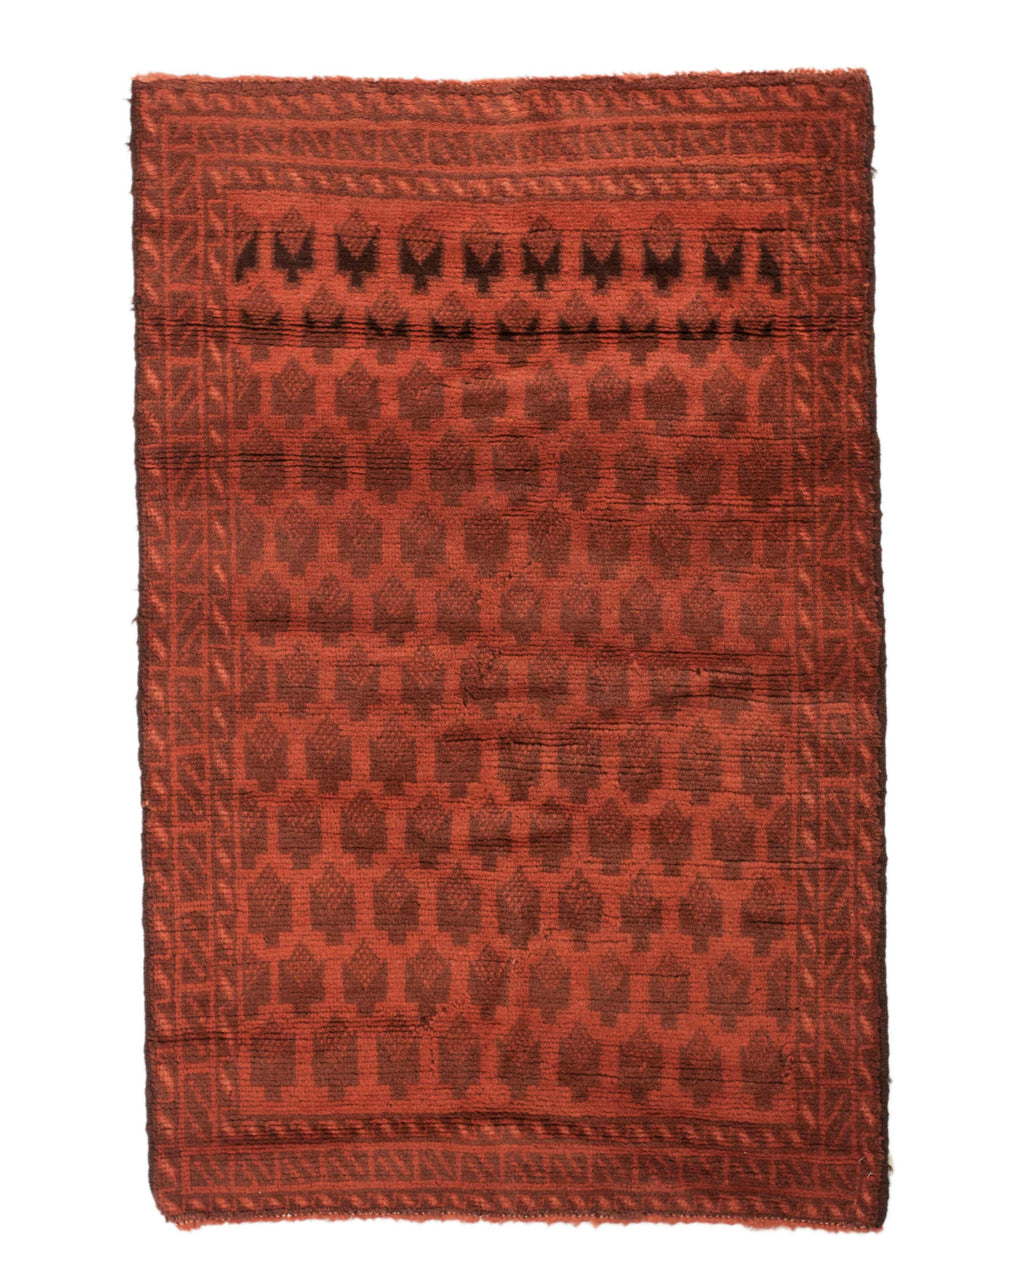 3x4 Overdyed Vintage Tribal Burnt Orange Rug 2522 - west of hudson